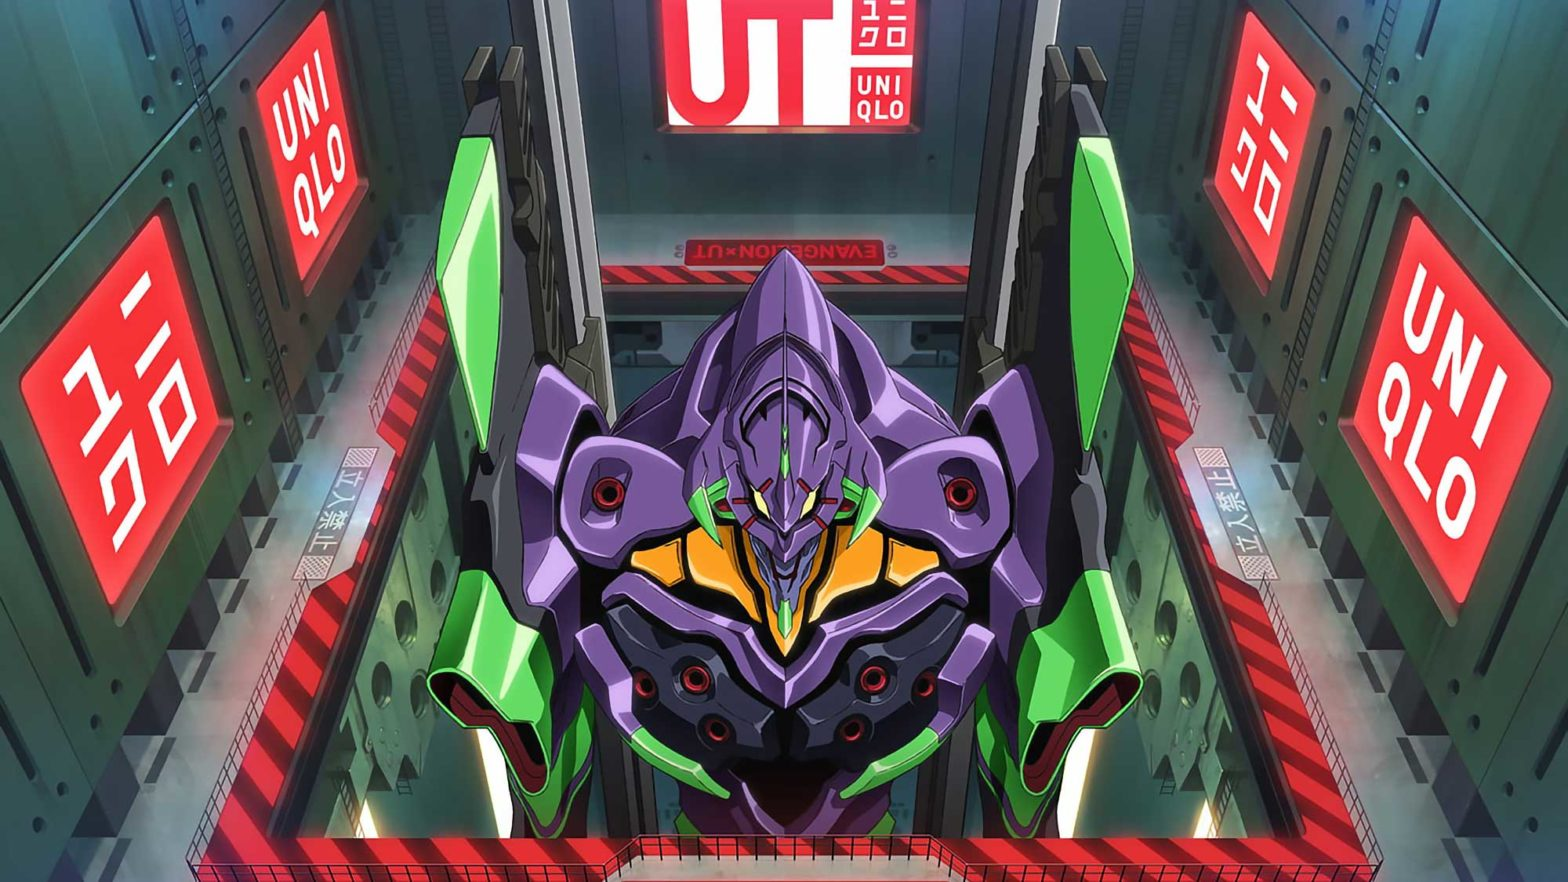 Evangelion and Gunpla Uniqlo Collection 2020